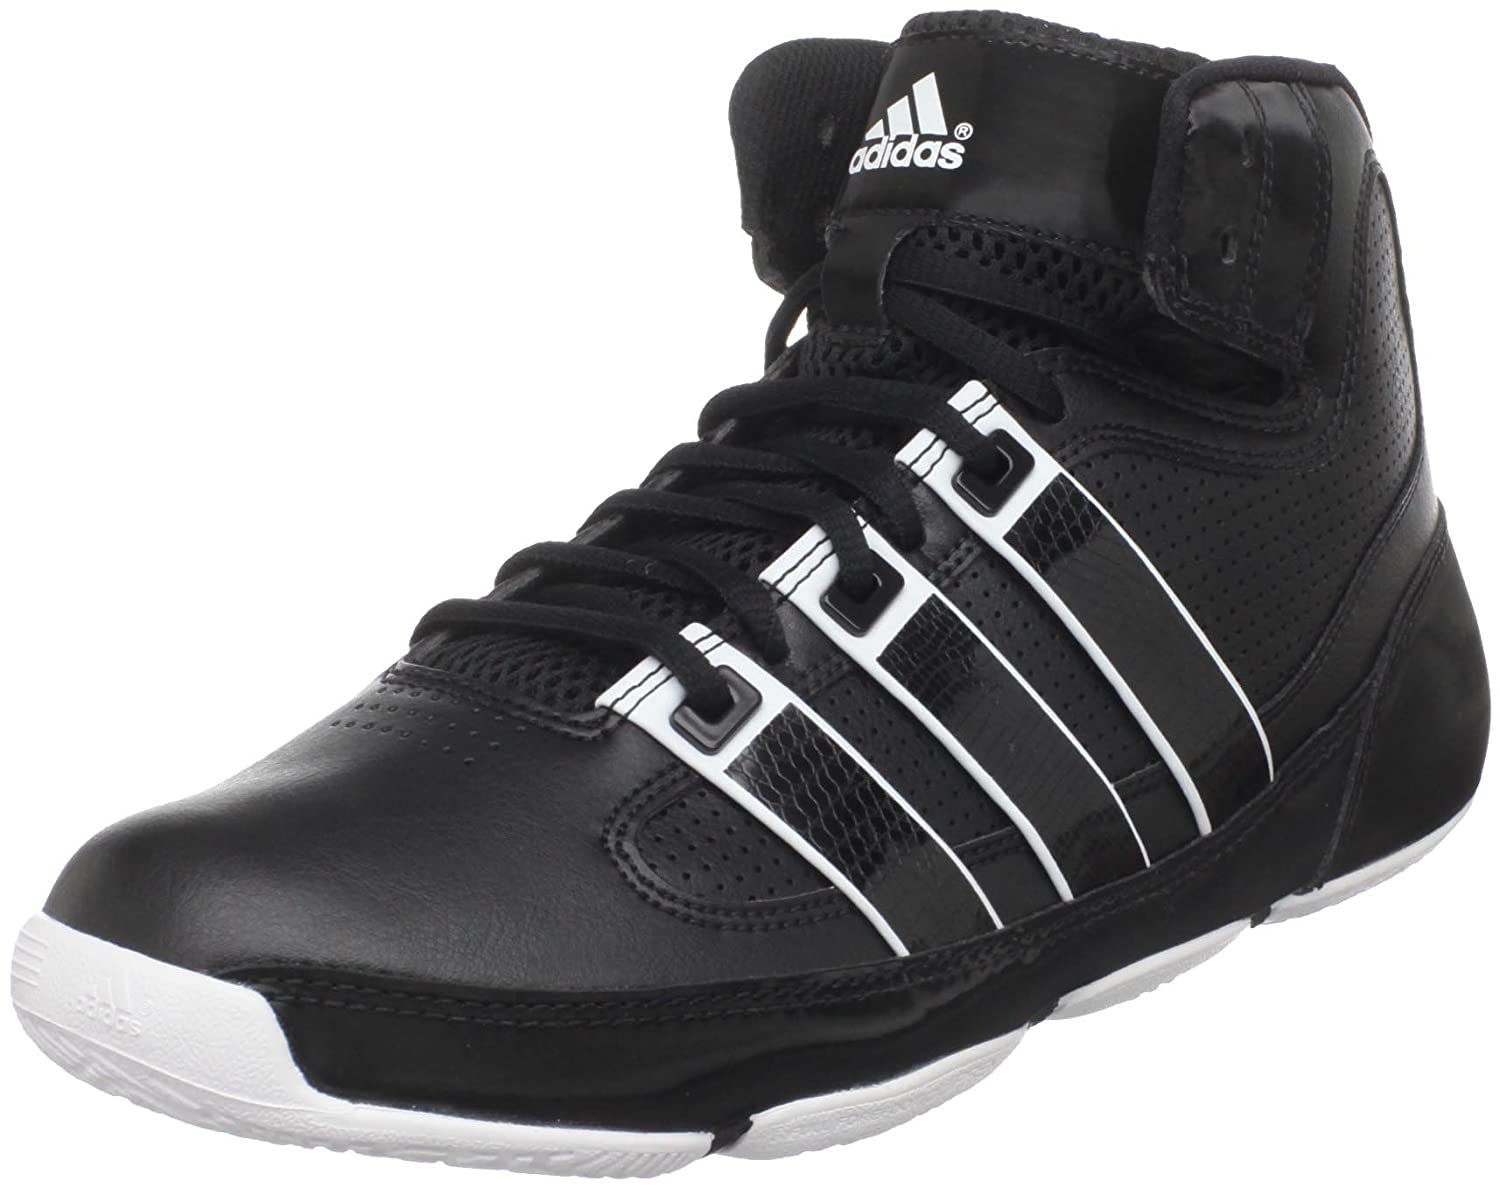 AdidasDaily Double Team-M - Daily Double Team-m Herren